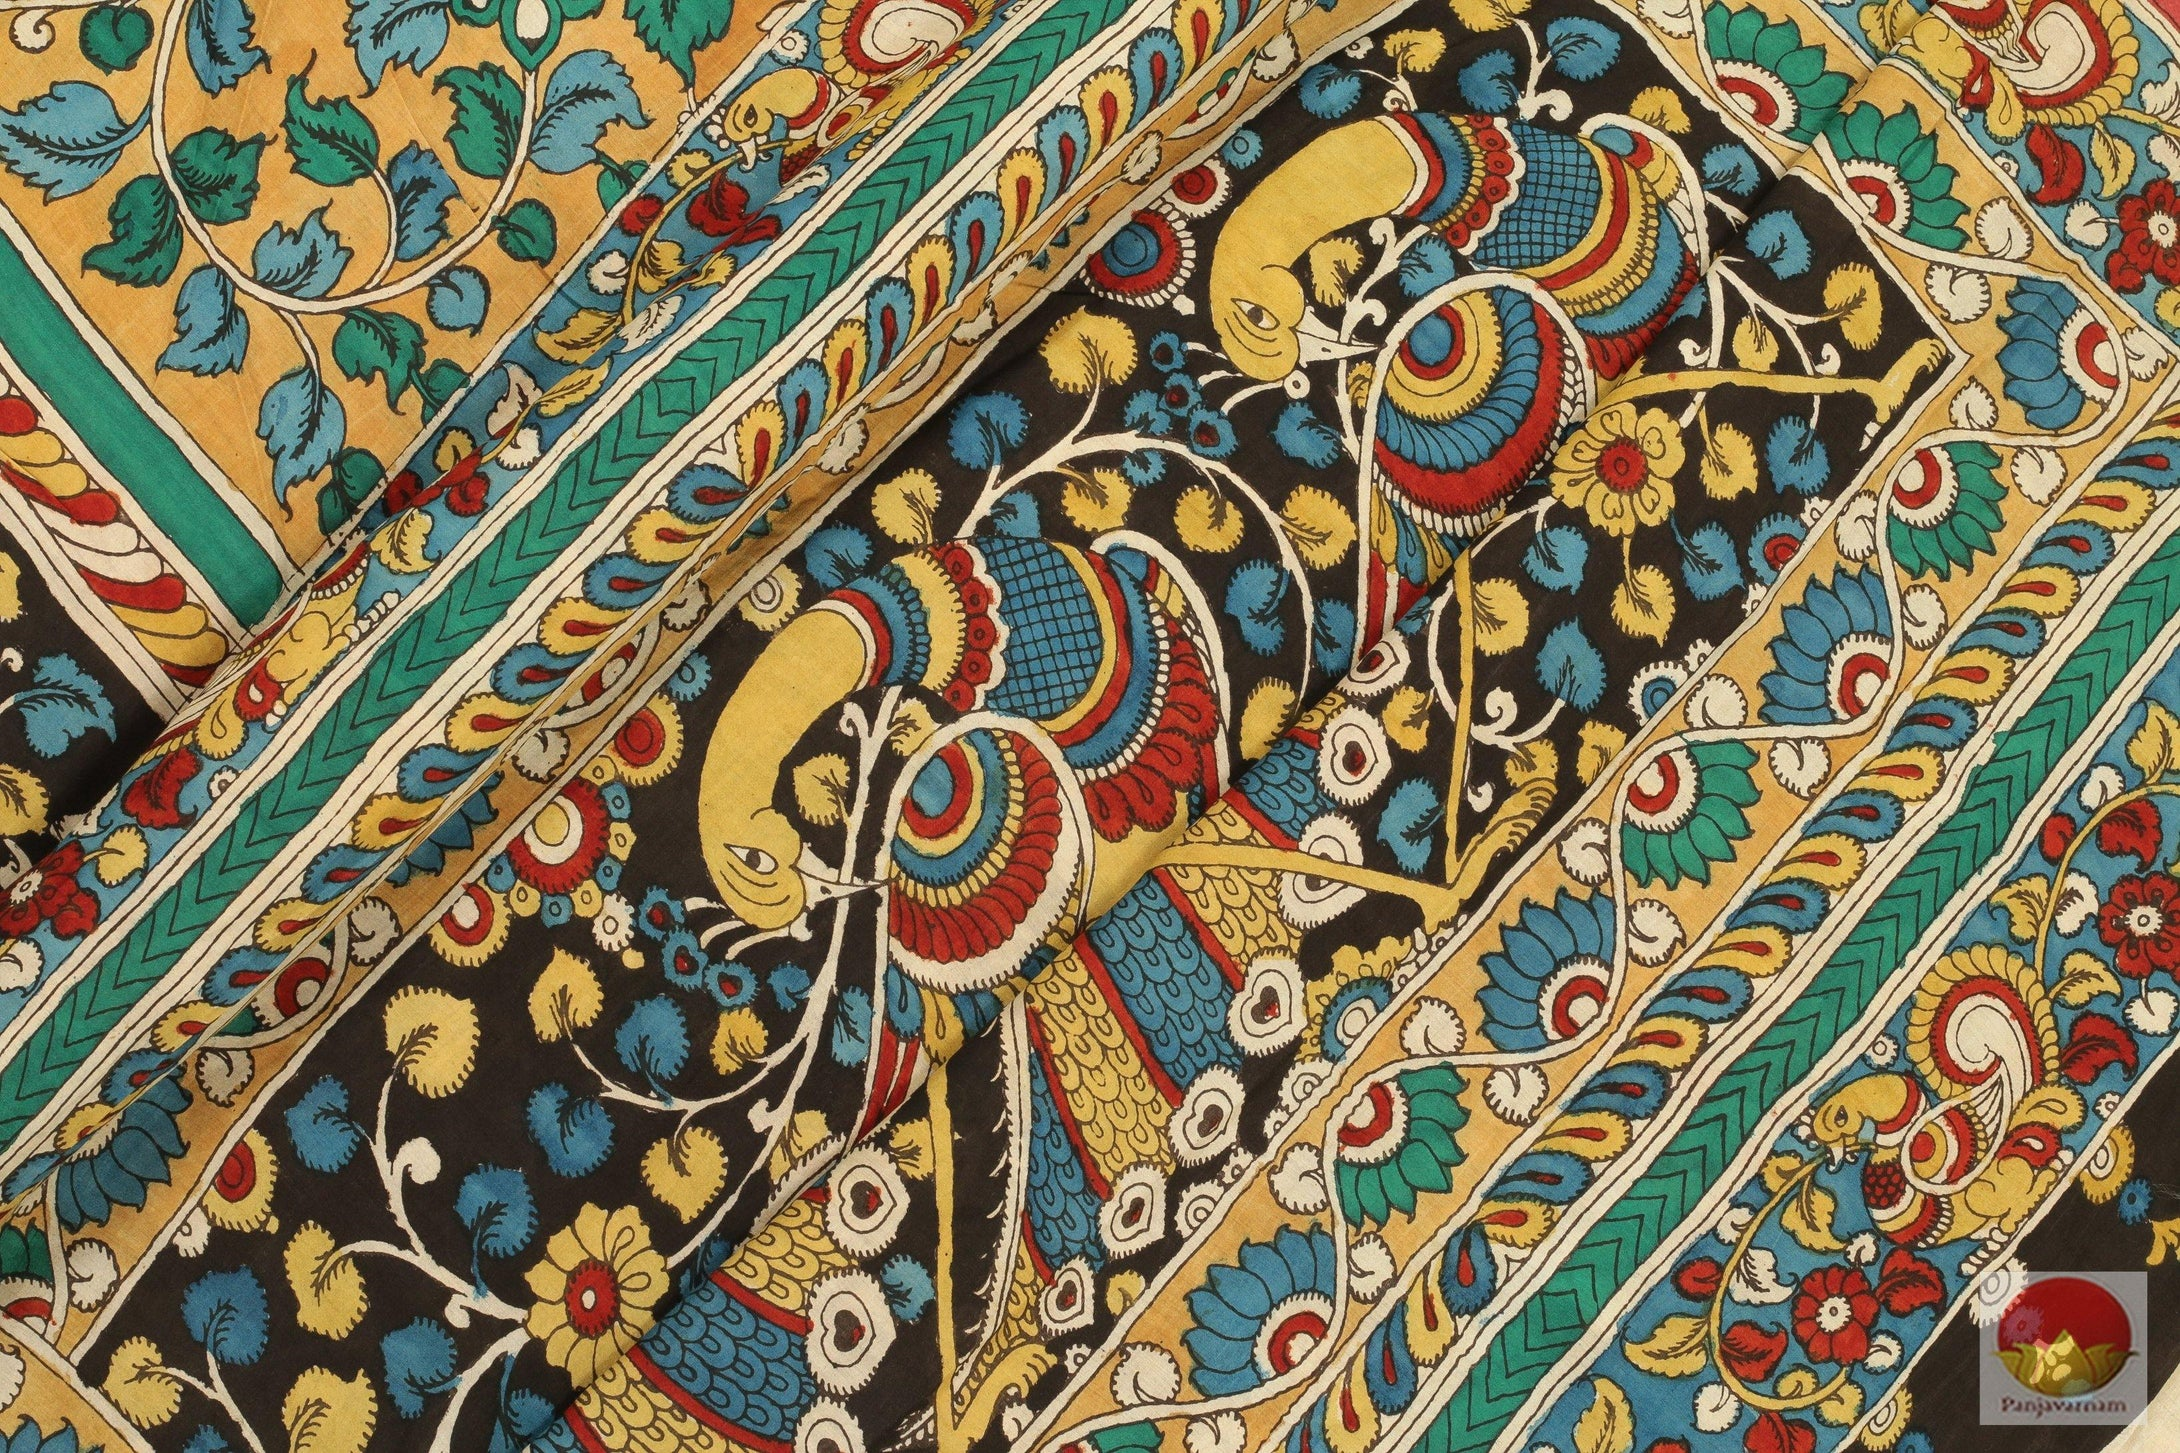 Handpainted Kalamkari Silk Saree - Vegetable Dyes - PKBD 208 Archives